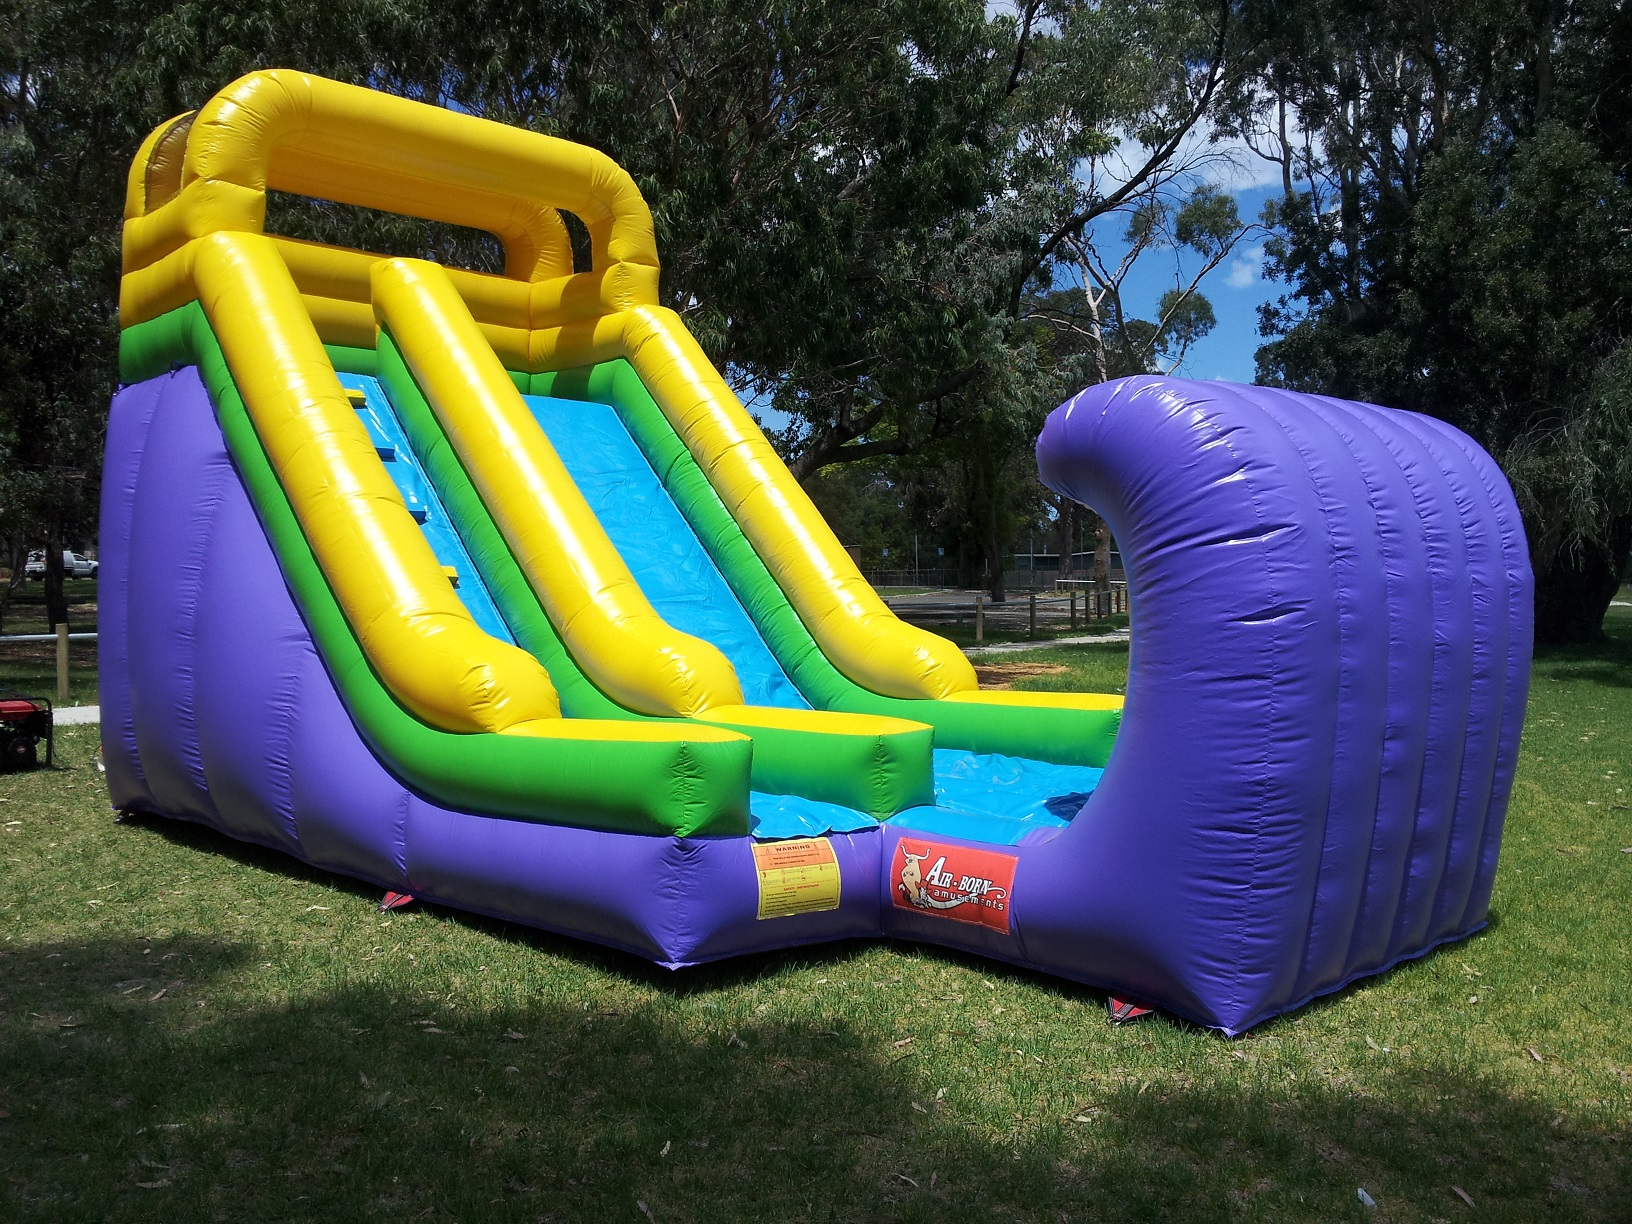 - GIANT WAVE SLIDE CAN BE HIRED FOR $250 AS PART OF OUR DOUBLE BOUNCE PACKAGE DEAL